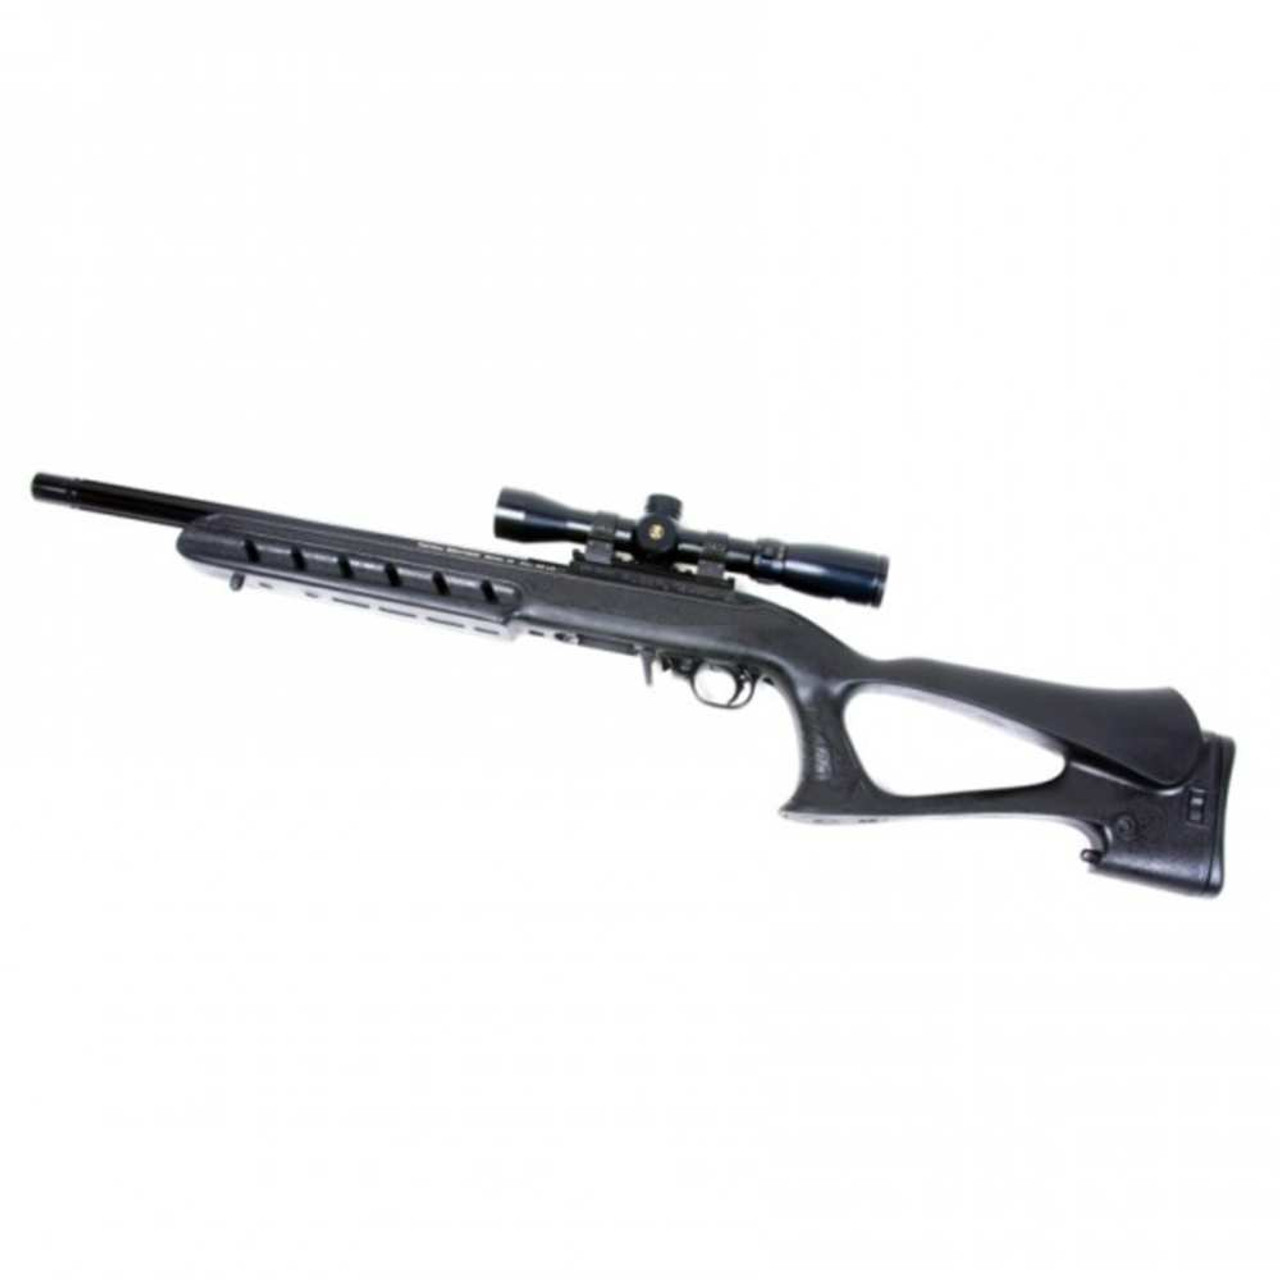 ProMag Archangel Stock, Fits 10/22 Rifle, Adjustable, Black TS1022, UPC  :708279009600